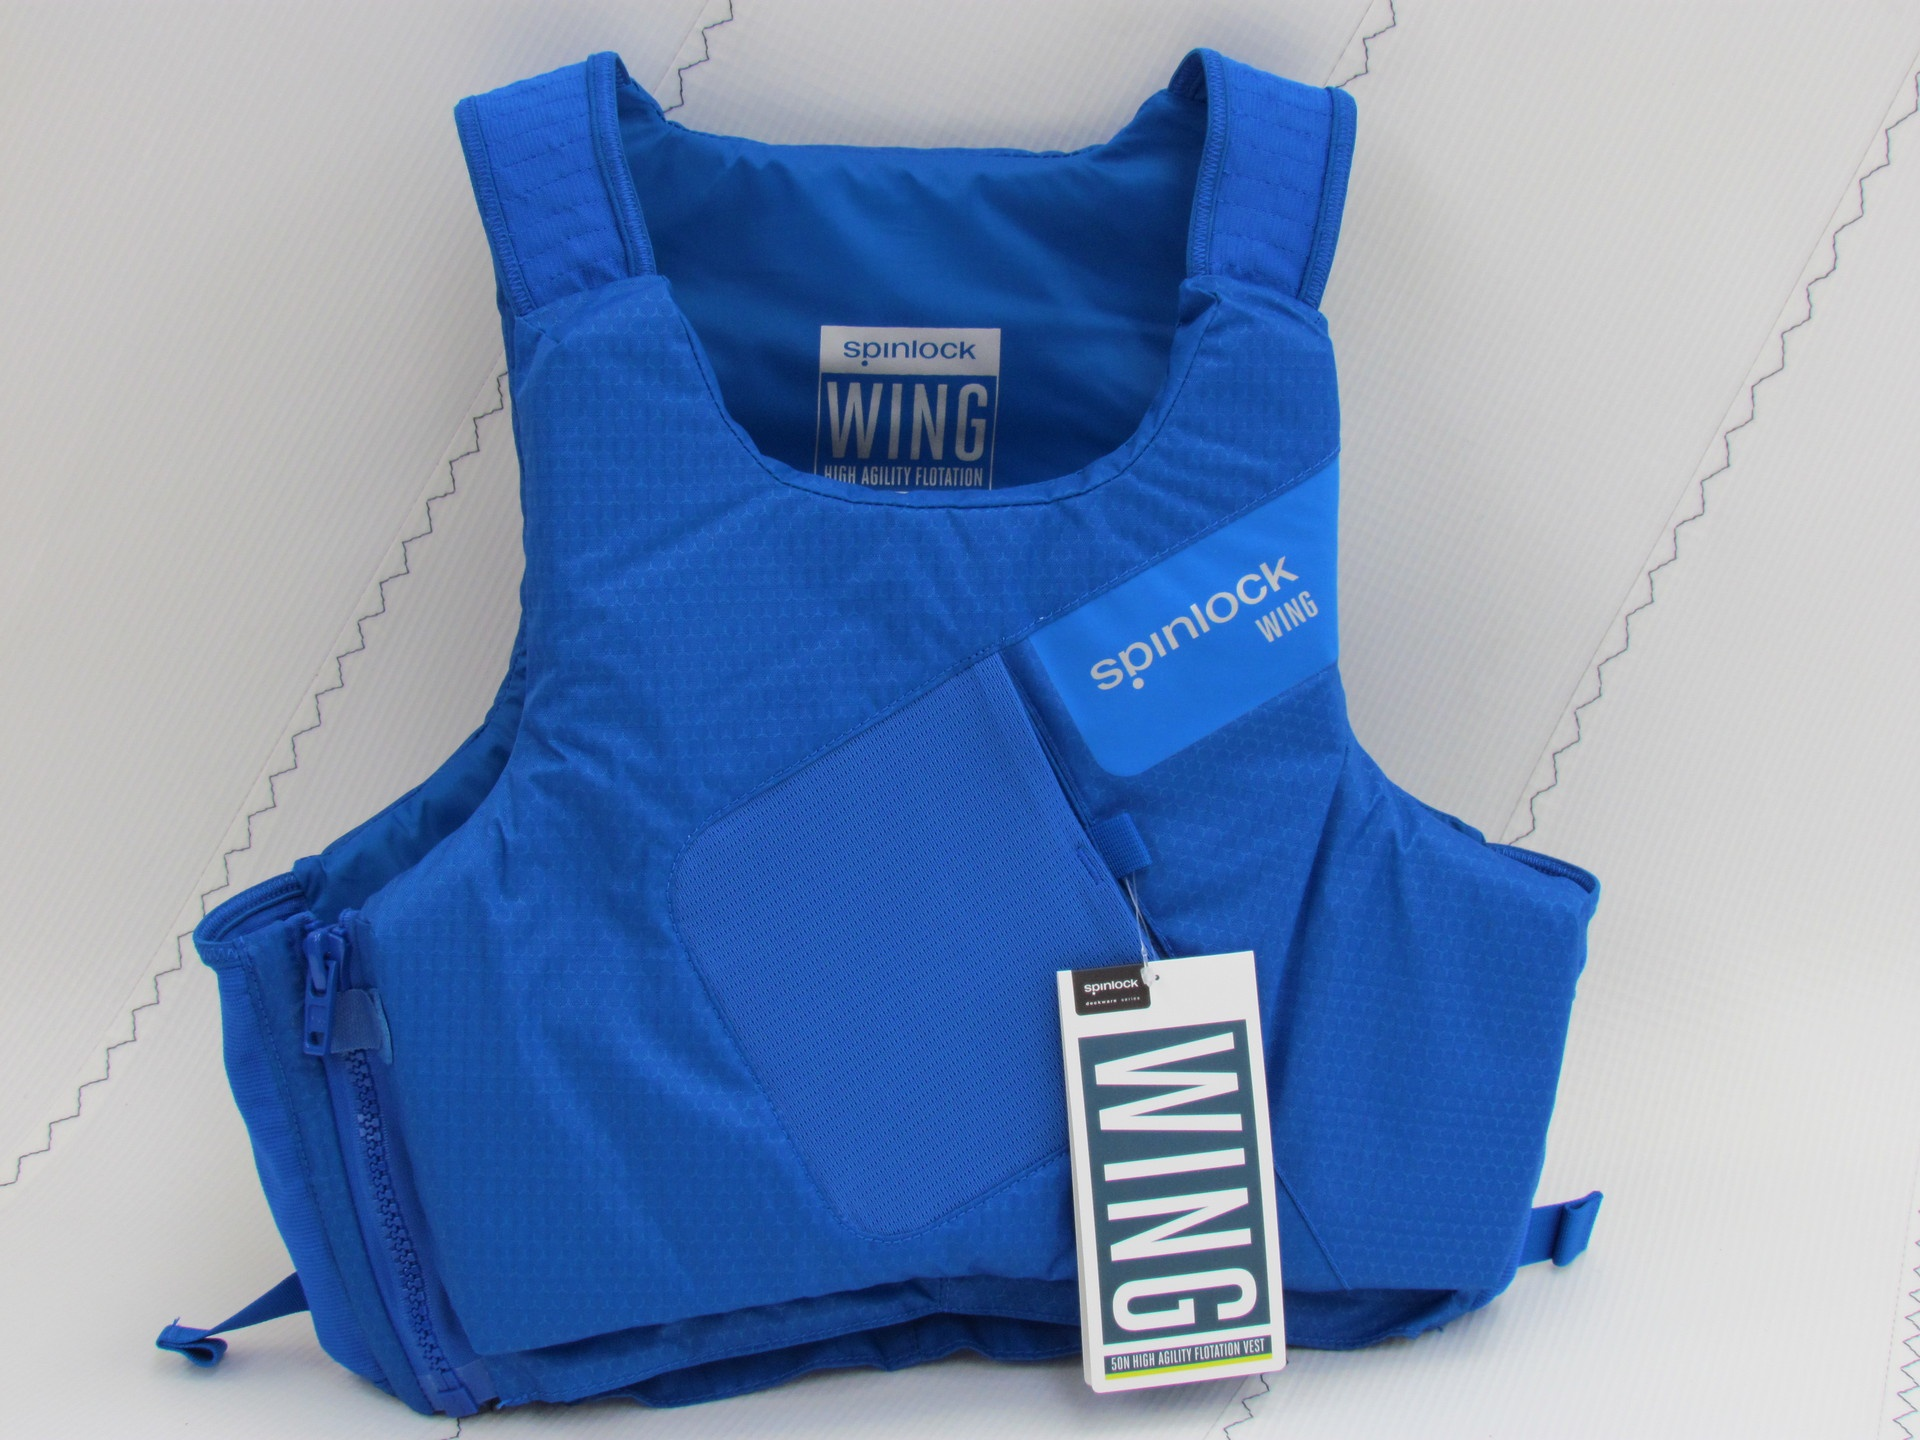 Spinlock Wing Side Zip PFD Cobalt Blue Size: Small